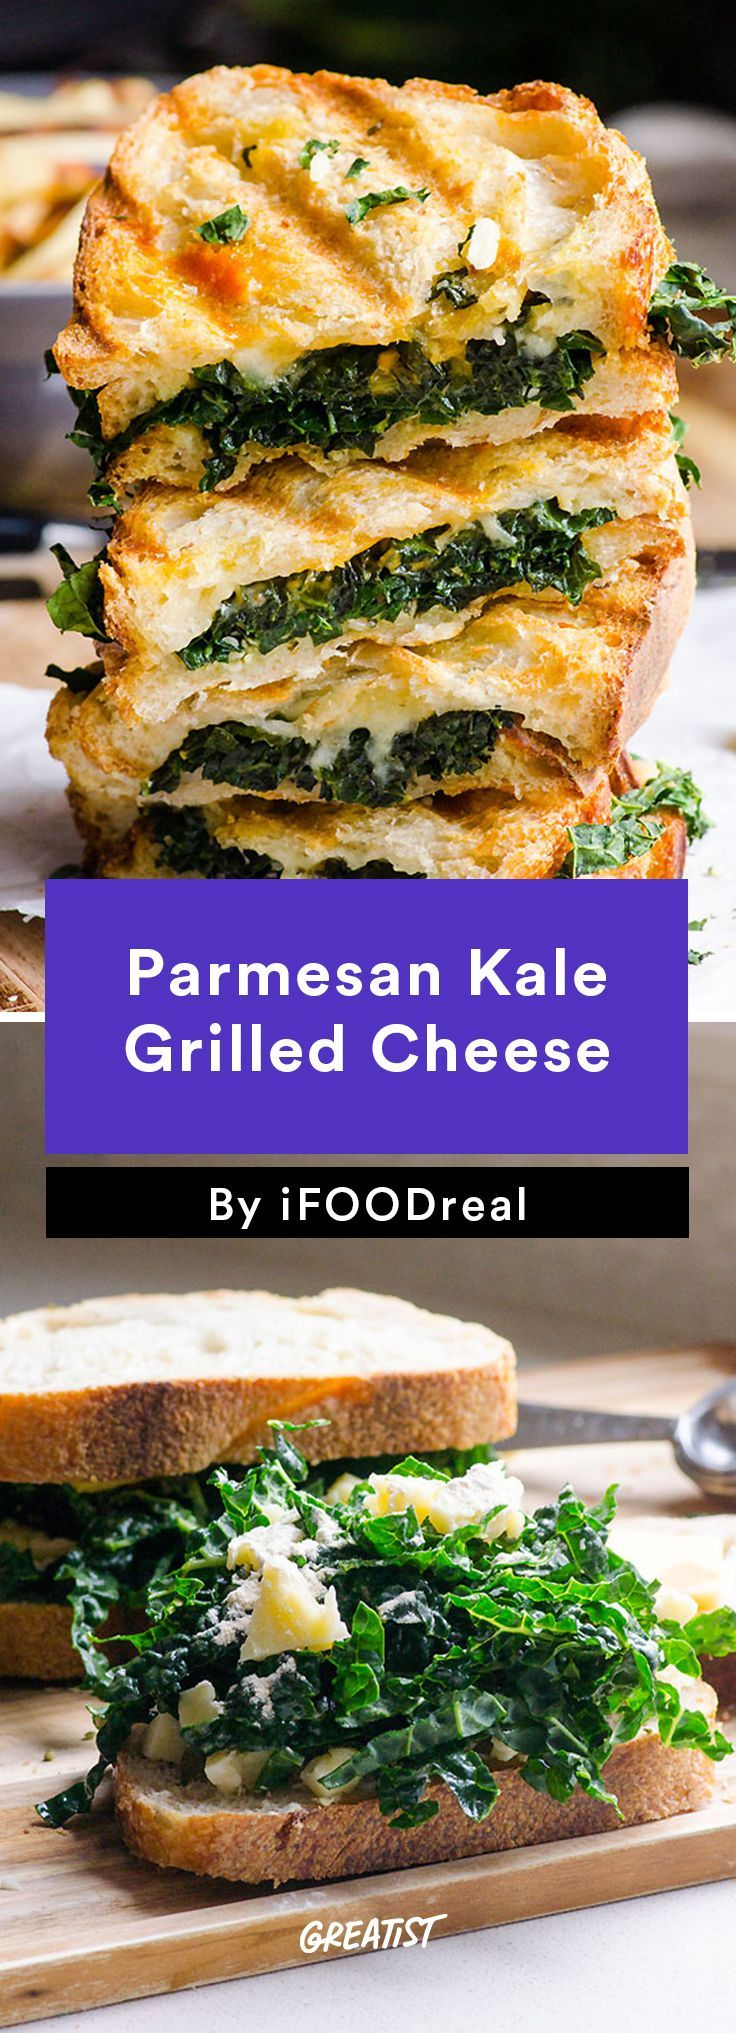 5. Parmesan Kale Grilled Cheese #healthy #weeknight #dinners http://greatist.com/eat/clean-eating-recipes-for-busy-weeknights